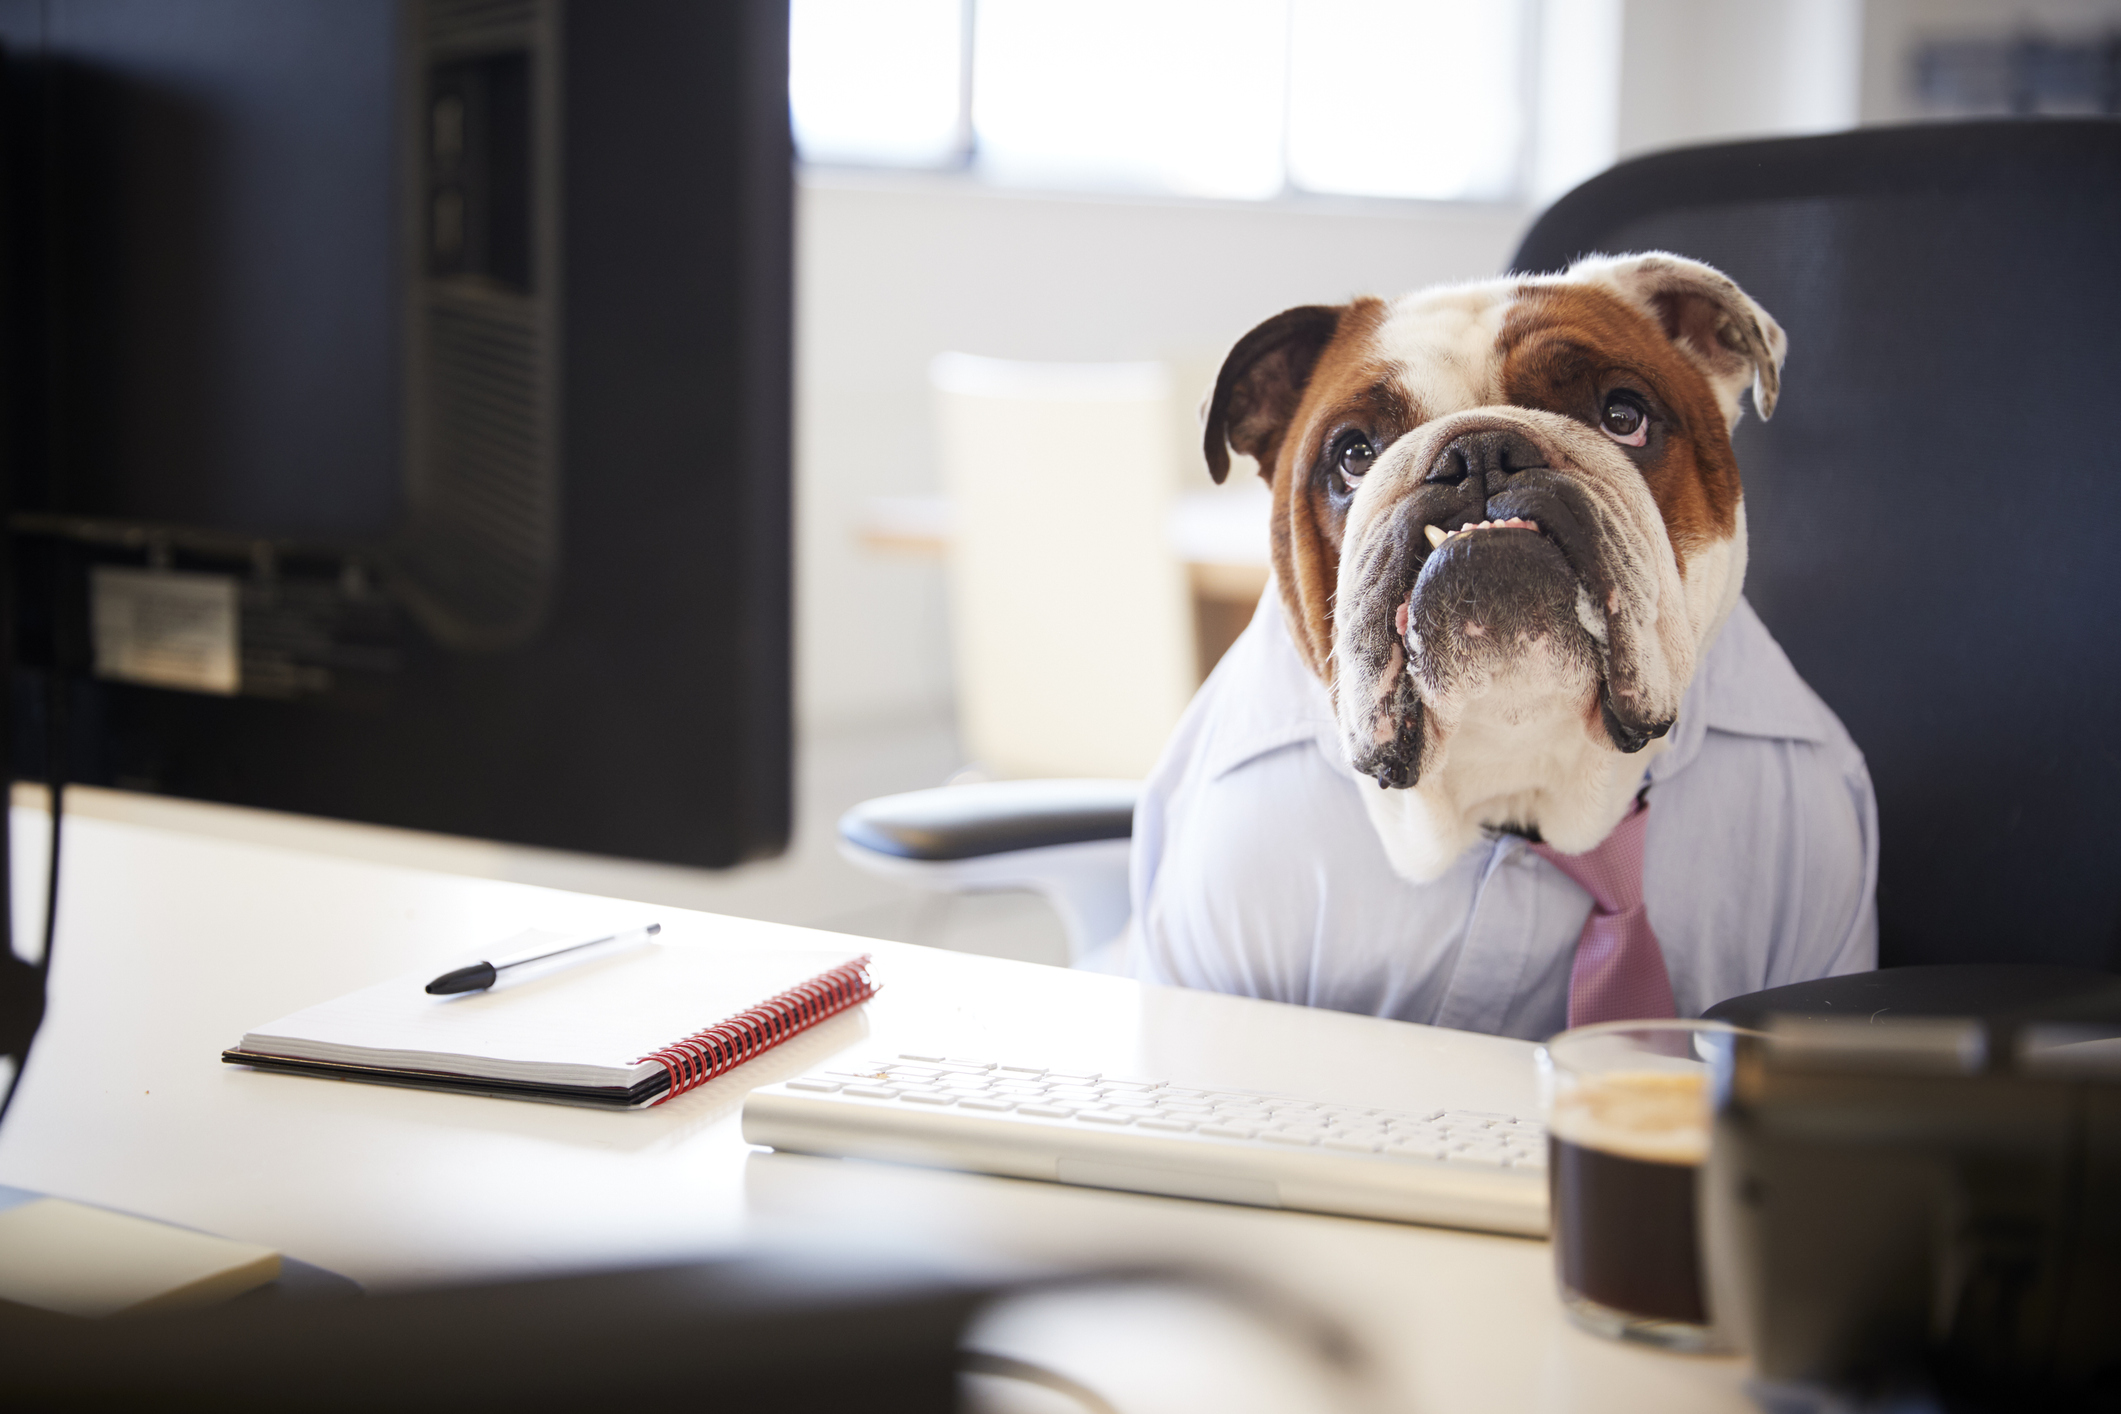 Picture of dog in a shirt and tie sitting at a desk.